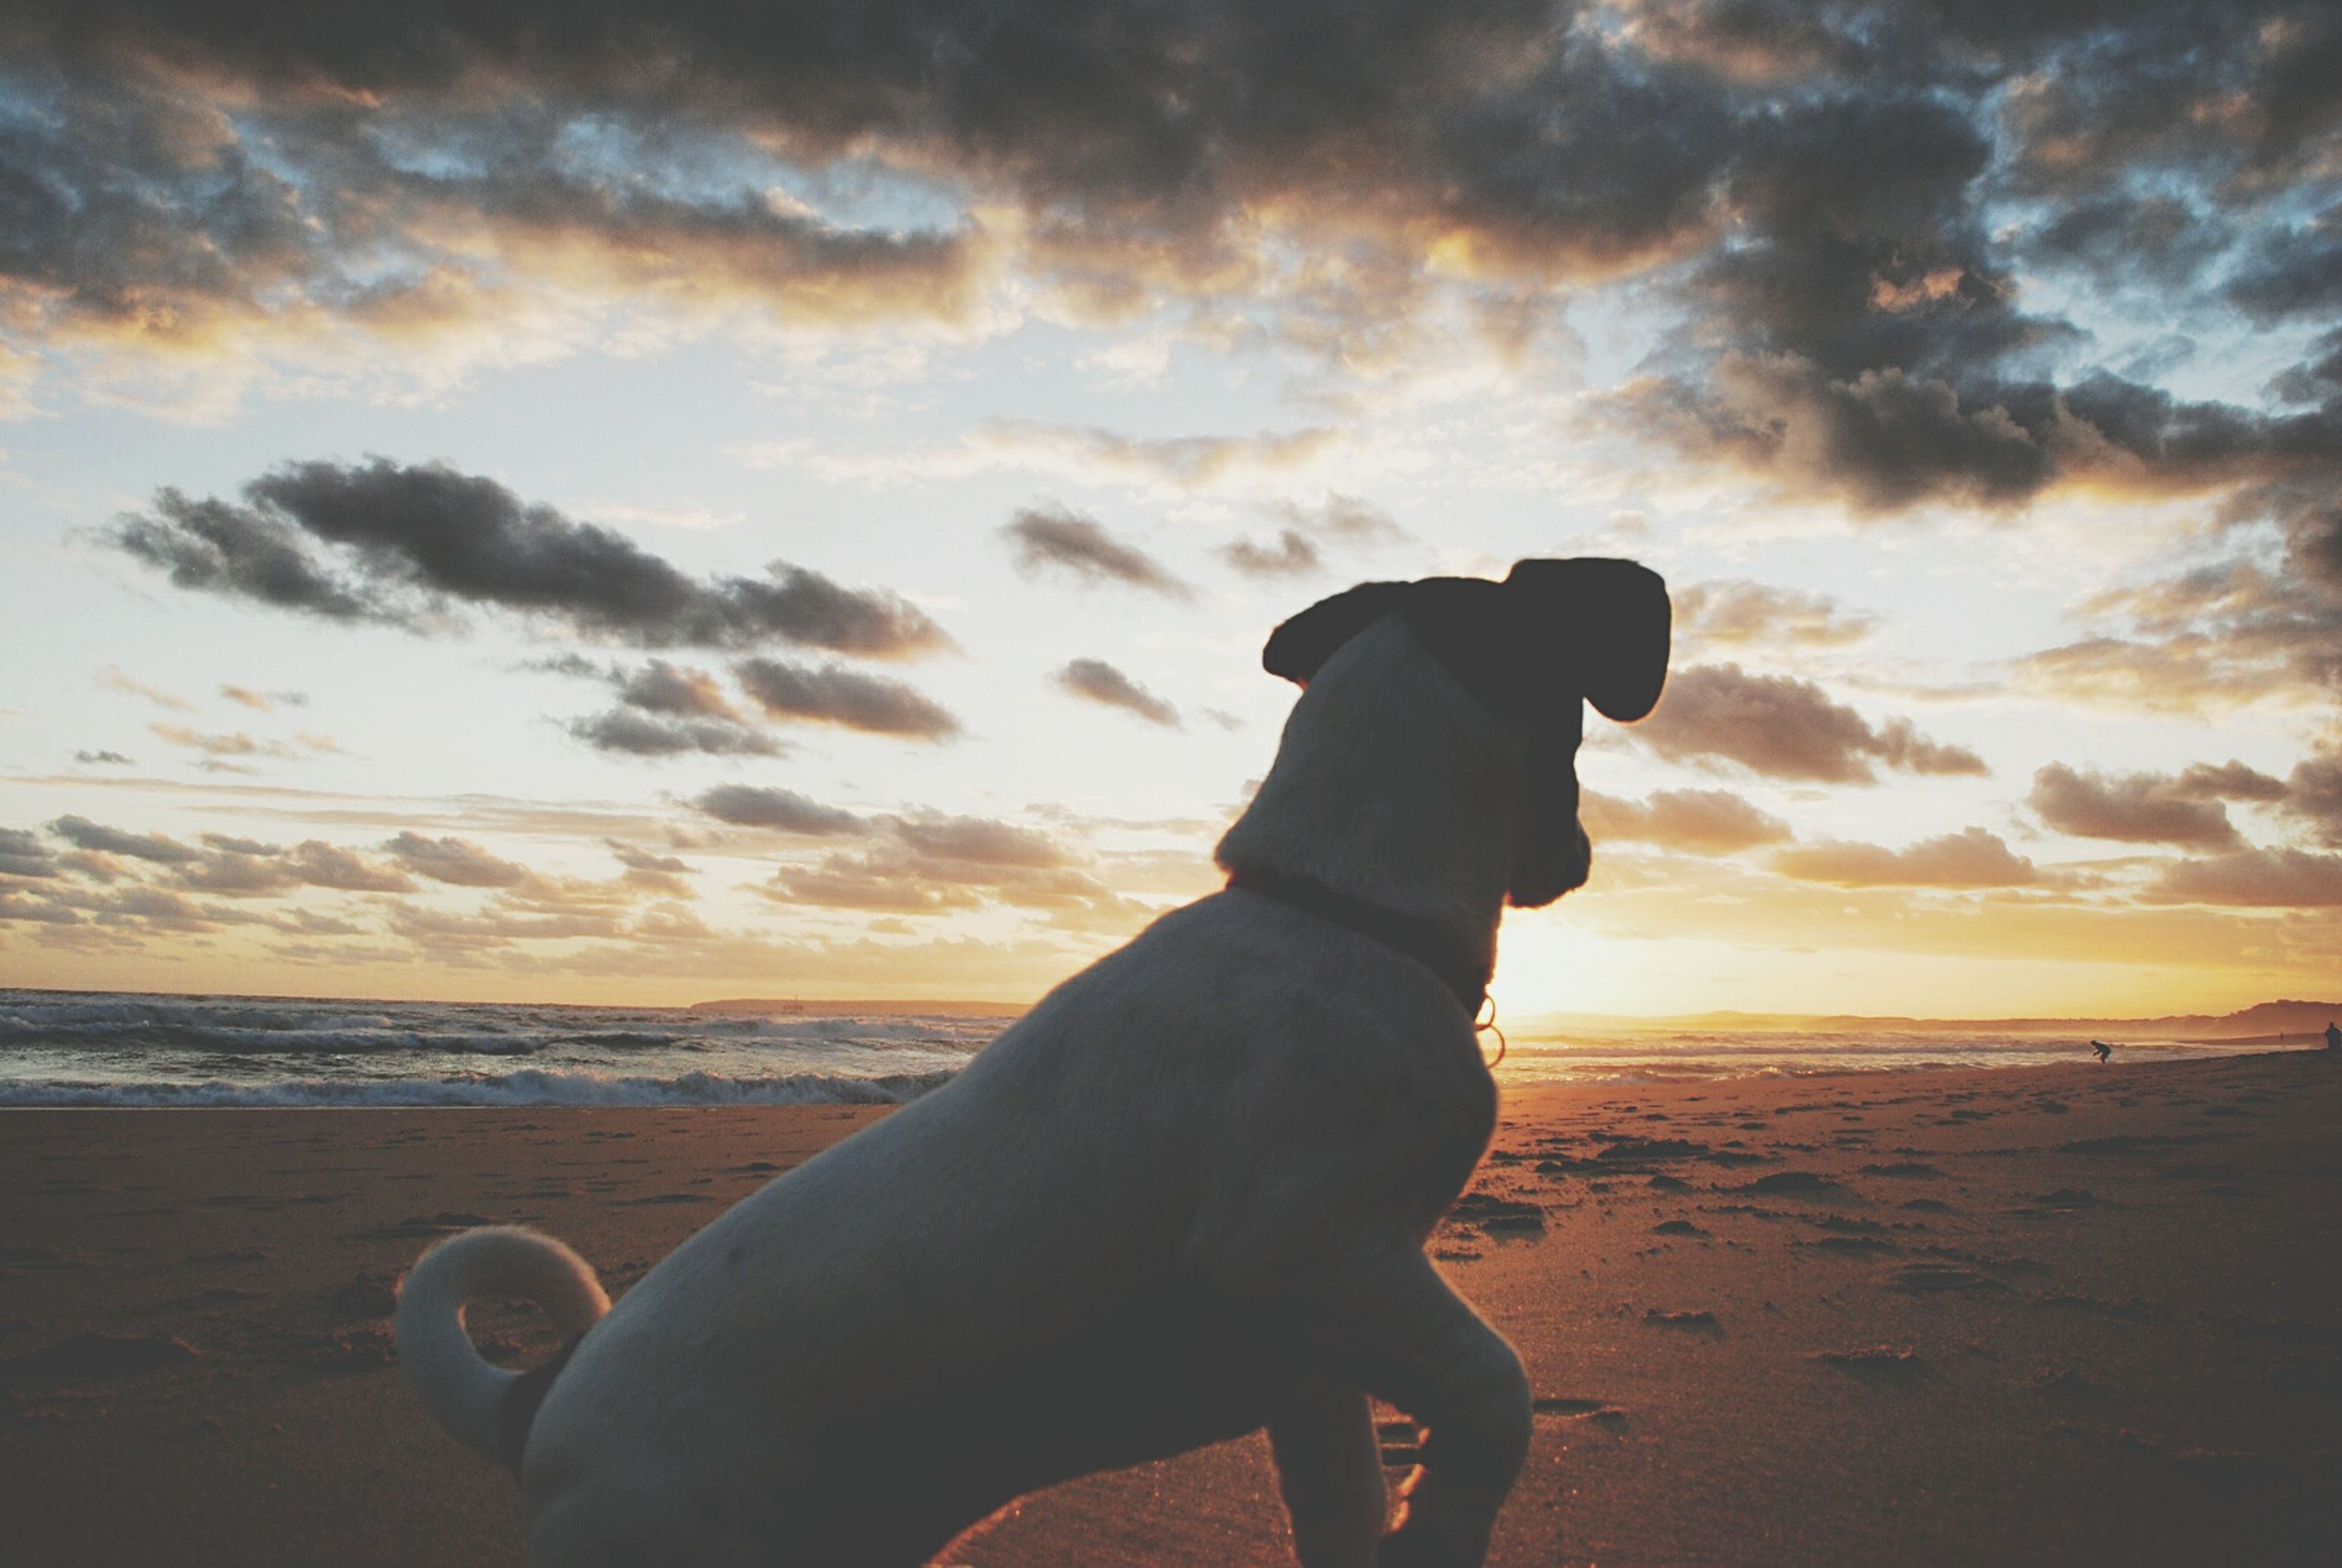 dog, one animal, animal themes, sunset, sky, pets, mammal, cloud - sky, nature, domestic animals, outdoors, beach, no people, day